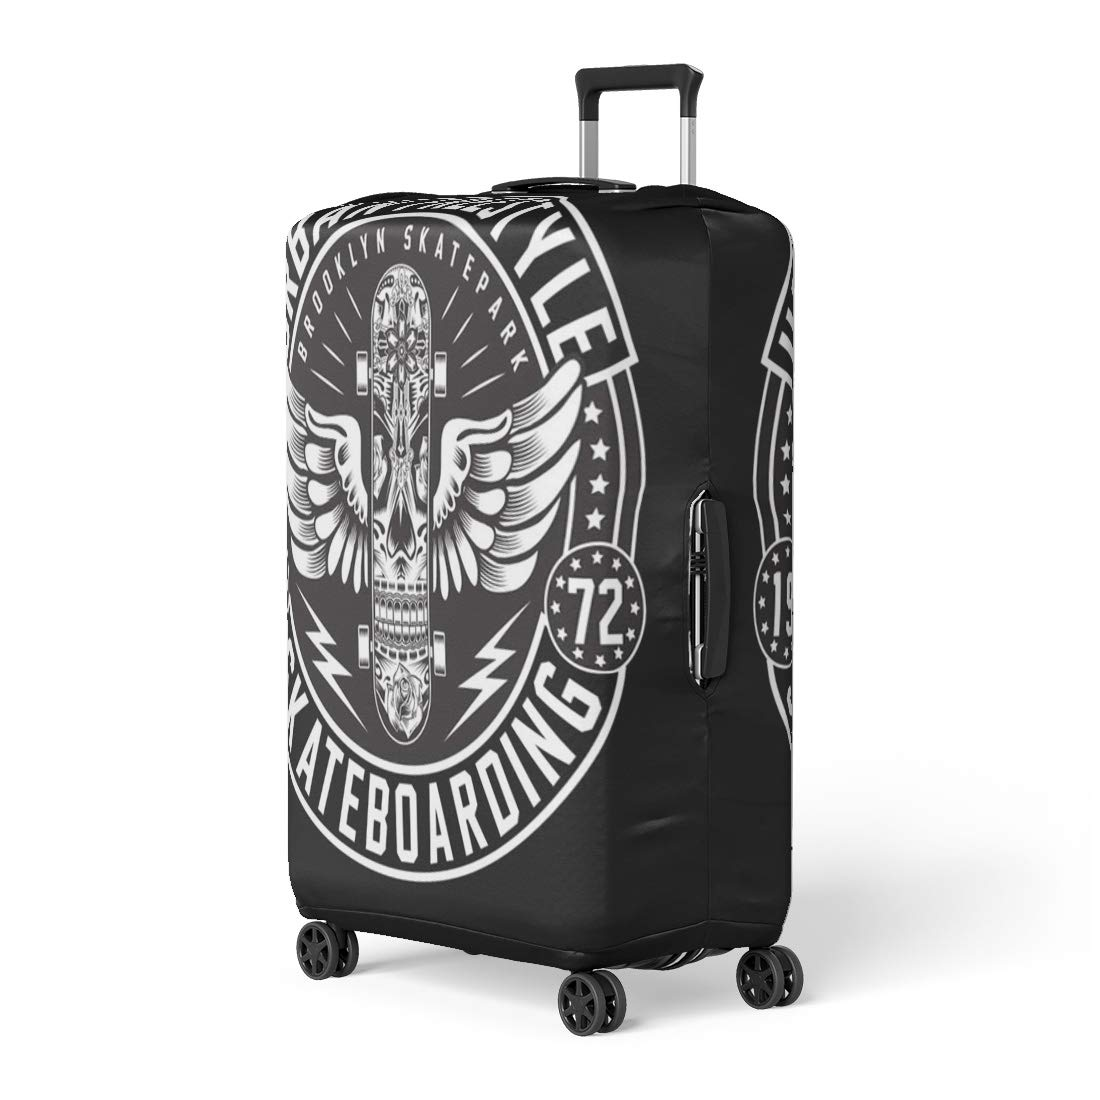 a4fc3579d210 Amazon.com: Pinbeam Luggage Cover Skateboard Skate Board Freestyle ...